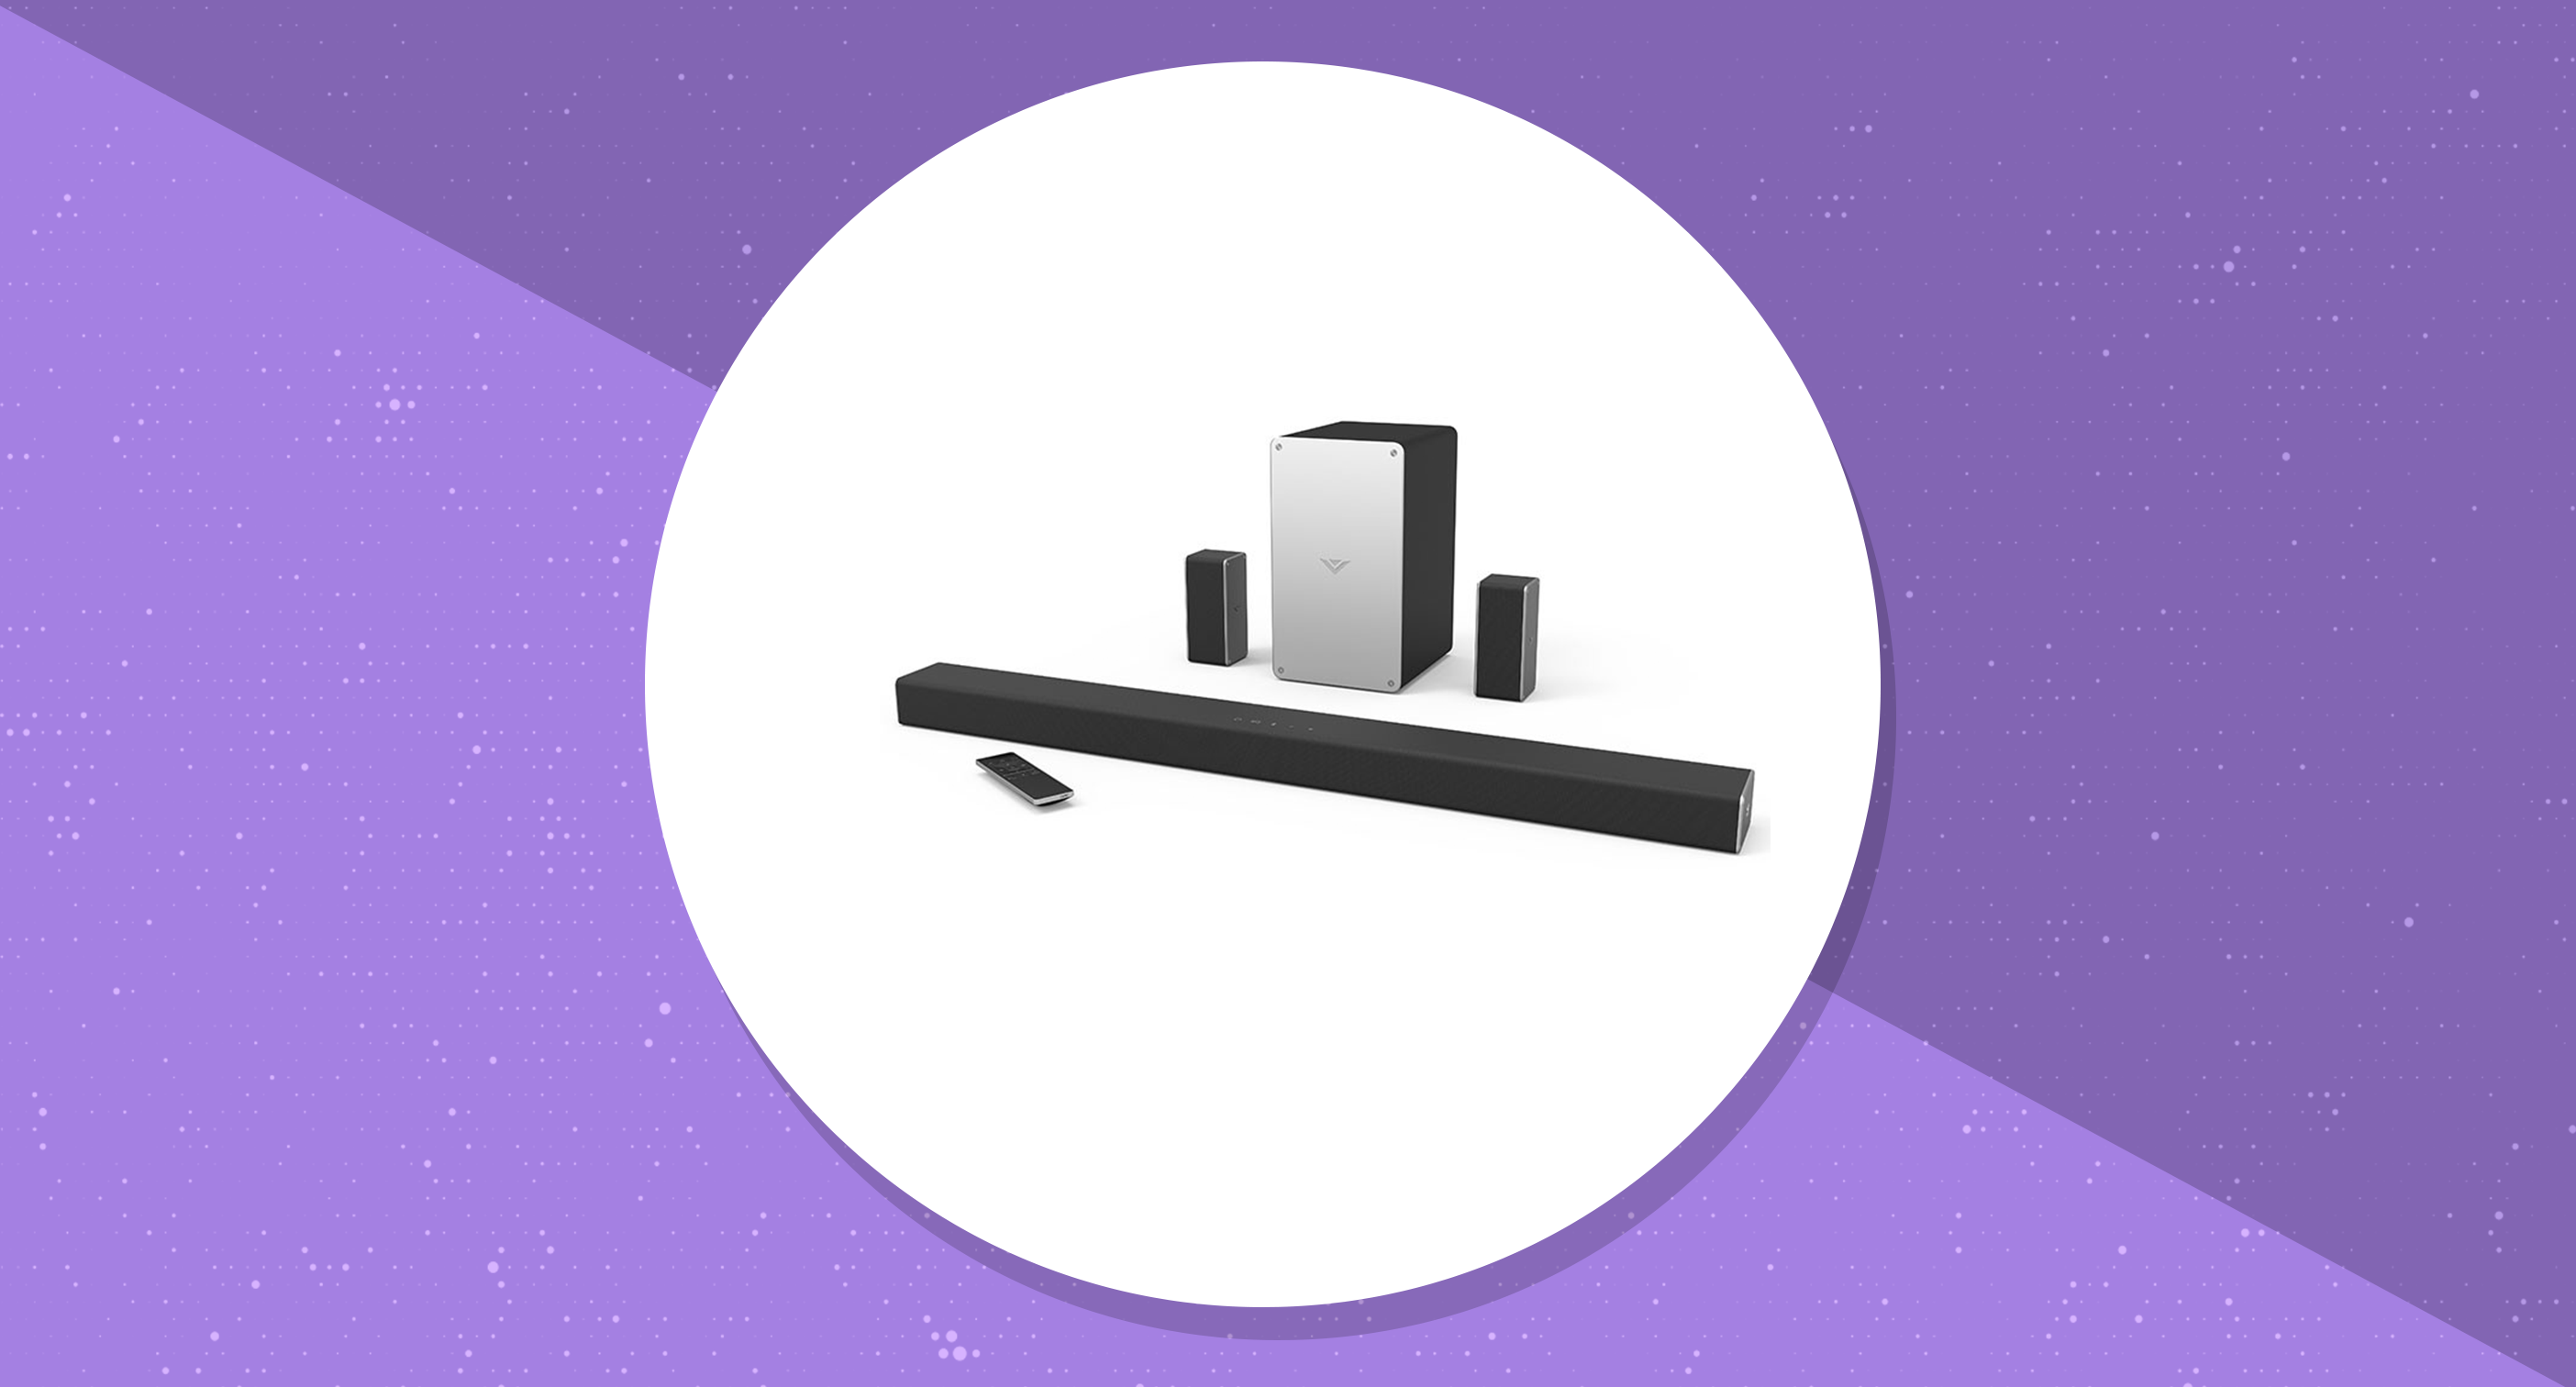 Make your TV feel brand new again with this Vizio sound bar — $30 off, today only